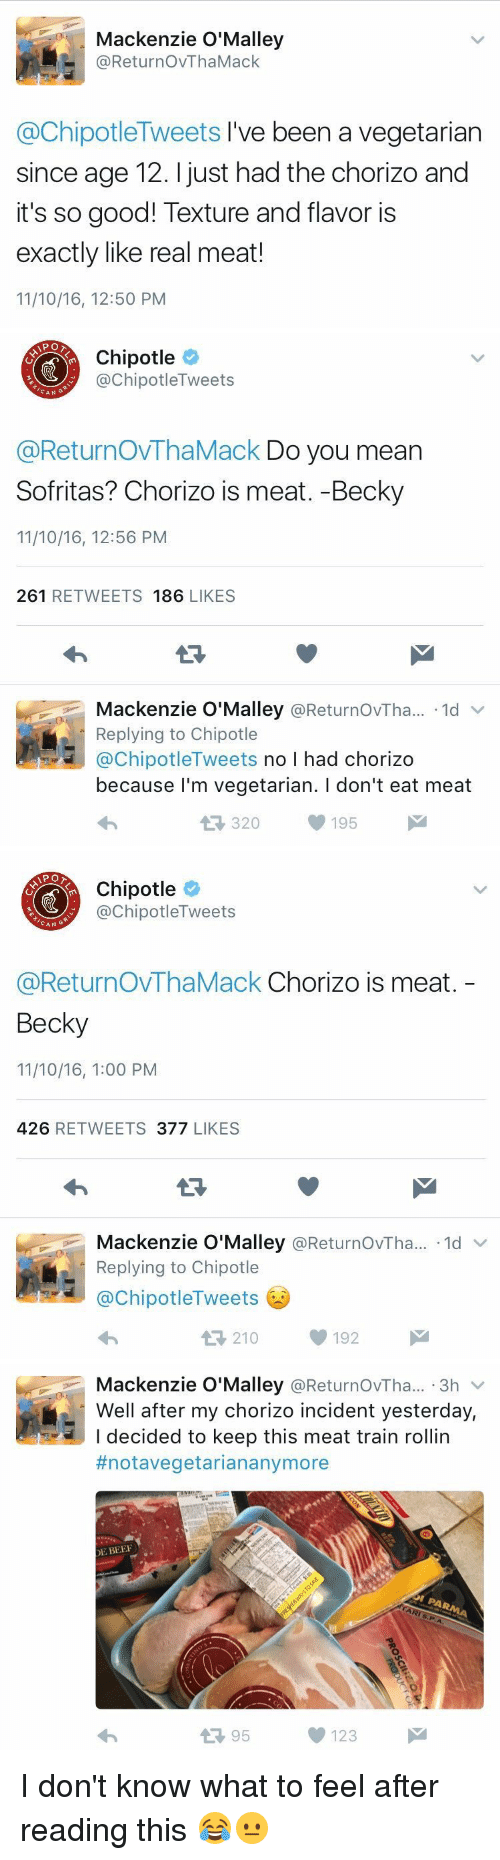 eating meat: Mackenzie O'Malley  @Retur no VThaMack  @ChipotleTweets I've been a vegetarian  since age 12. just had the chorizo and  it's so good! Texture and flavor is  exactly like real meat!  11/10/16, 12:50 PM   APO  Chipotle  nipotle Tweets  CAN  @ReturnovThaMack Do you mean  Sofritas? Chorizo is meat. -Becky  11/10/16, 12:56 PM  261  RETWEETS  186  LIKES  Mackenzie O'Malley  @ReturnovTha... 1d v  Replying to Chipotle  @Chipotle  Tweets  no l had chorizo  because I'm vegetarian. l don't eat meat  195  320   Chipotle  ChipotleTweets  CAN  G  @ReturnOVThaMack Chorizo is meat  Becky  11/10/16, 1:00 PM  426  RETWEETS  377  LIKES  Mackenzie O'Malley  @ReturnovTha... ld  v  Replying to Chipotle  @Chipotle Tweets  t 210 192   Mackenzie O'Malley  @ReturnovTha... 3h  v  Well after my chorizo incident yesterday,  I decided to keep this meat train rollin  #notavegetarian anymore  DE BEEF  123  95 I don't know what to feel after reading this 😂😐